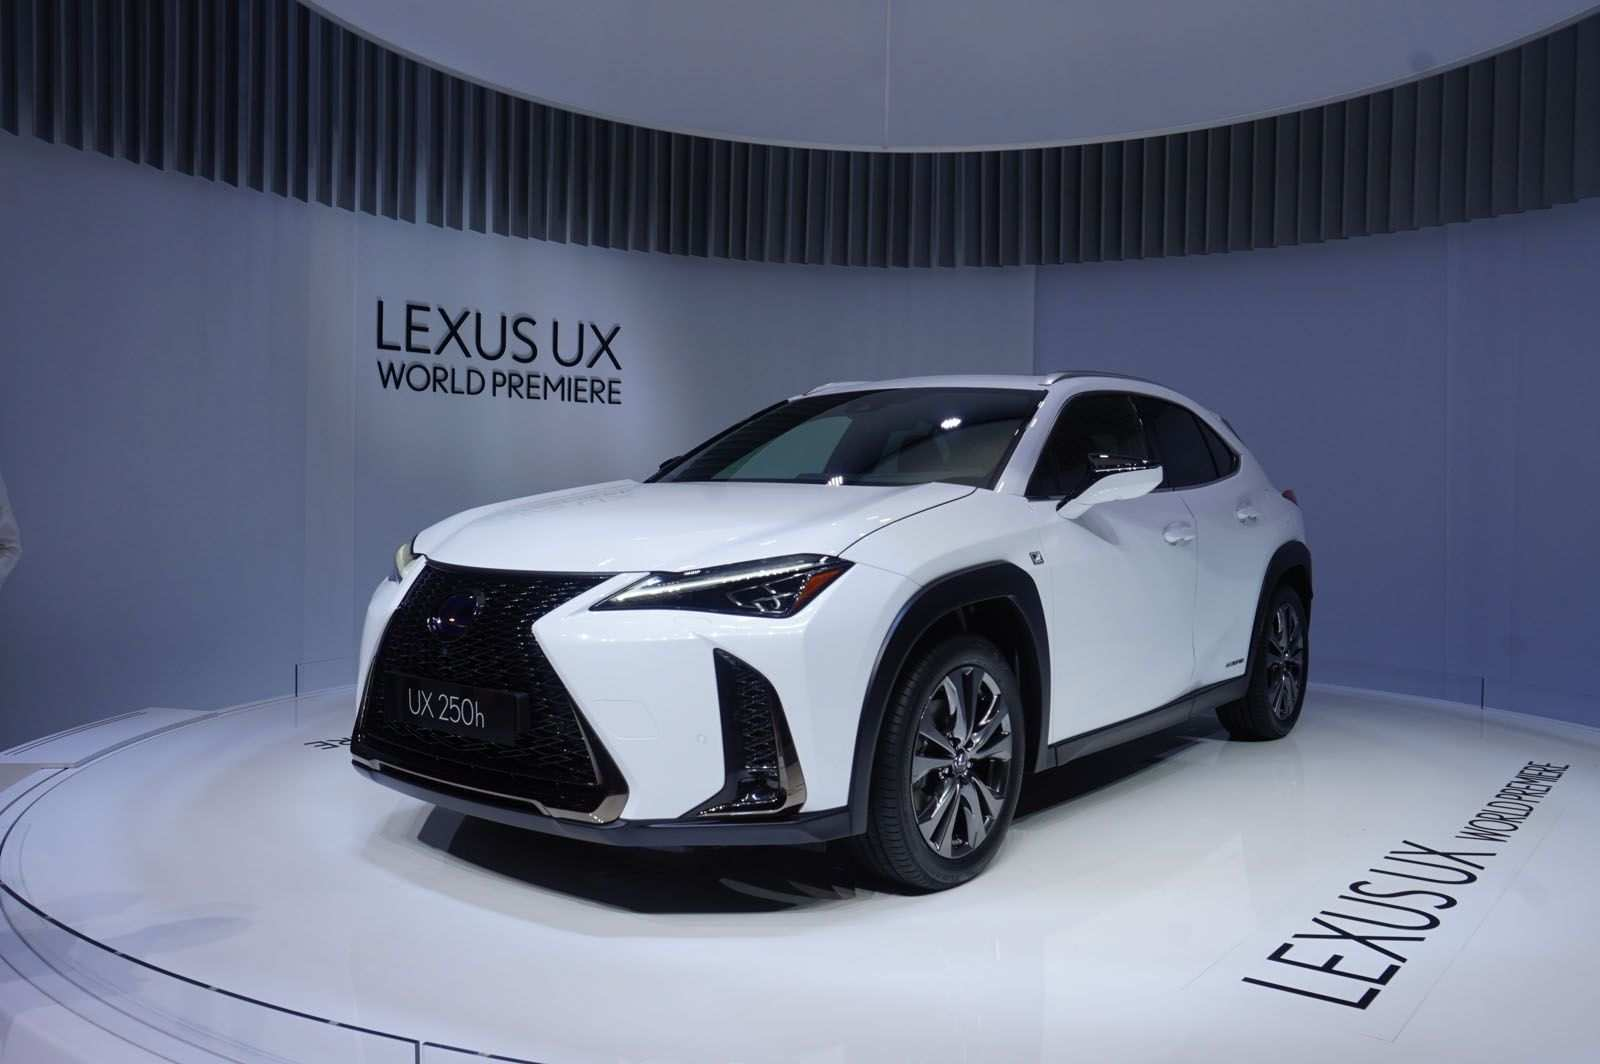 41 All New 2019 Lexus Minivan Exterior And Interior